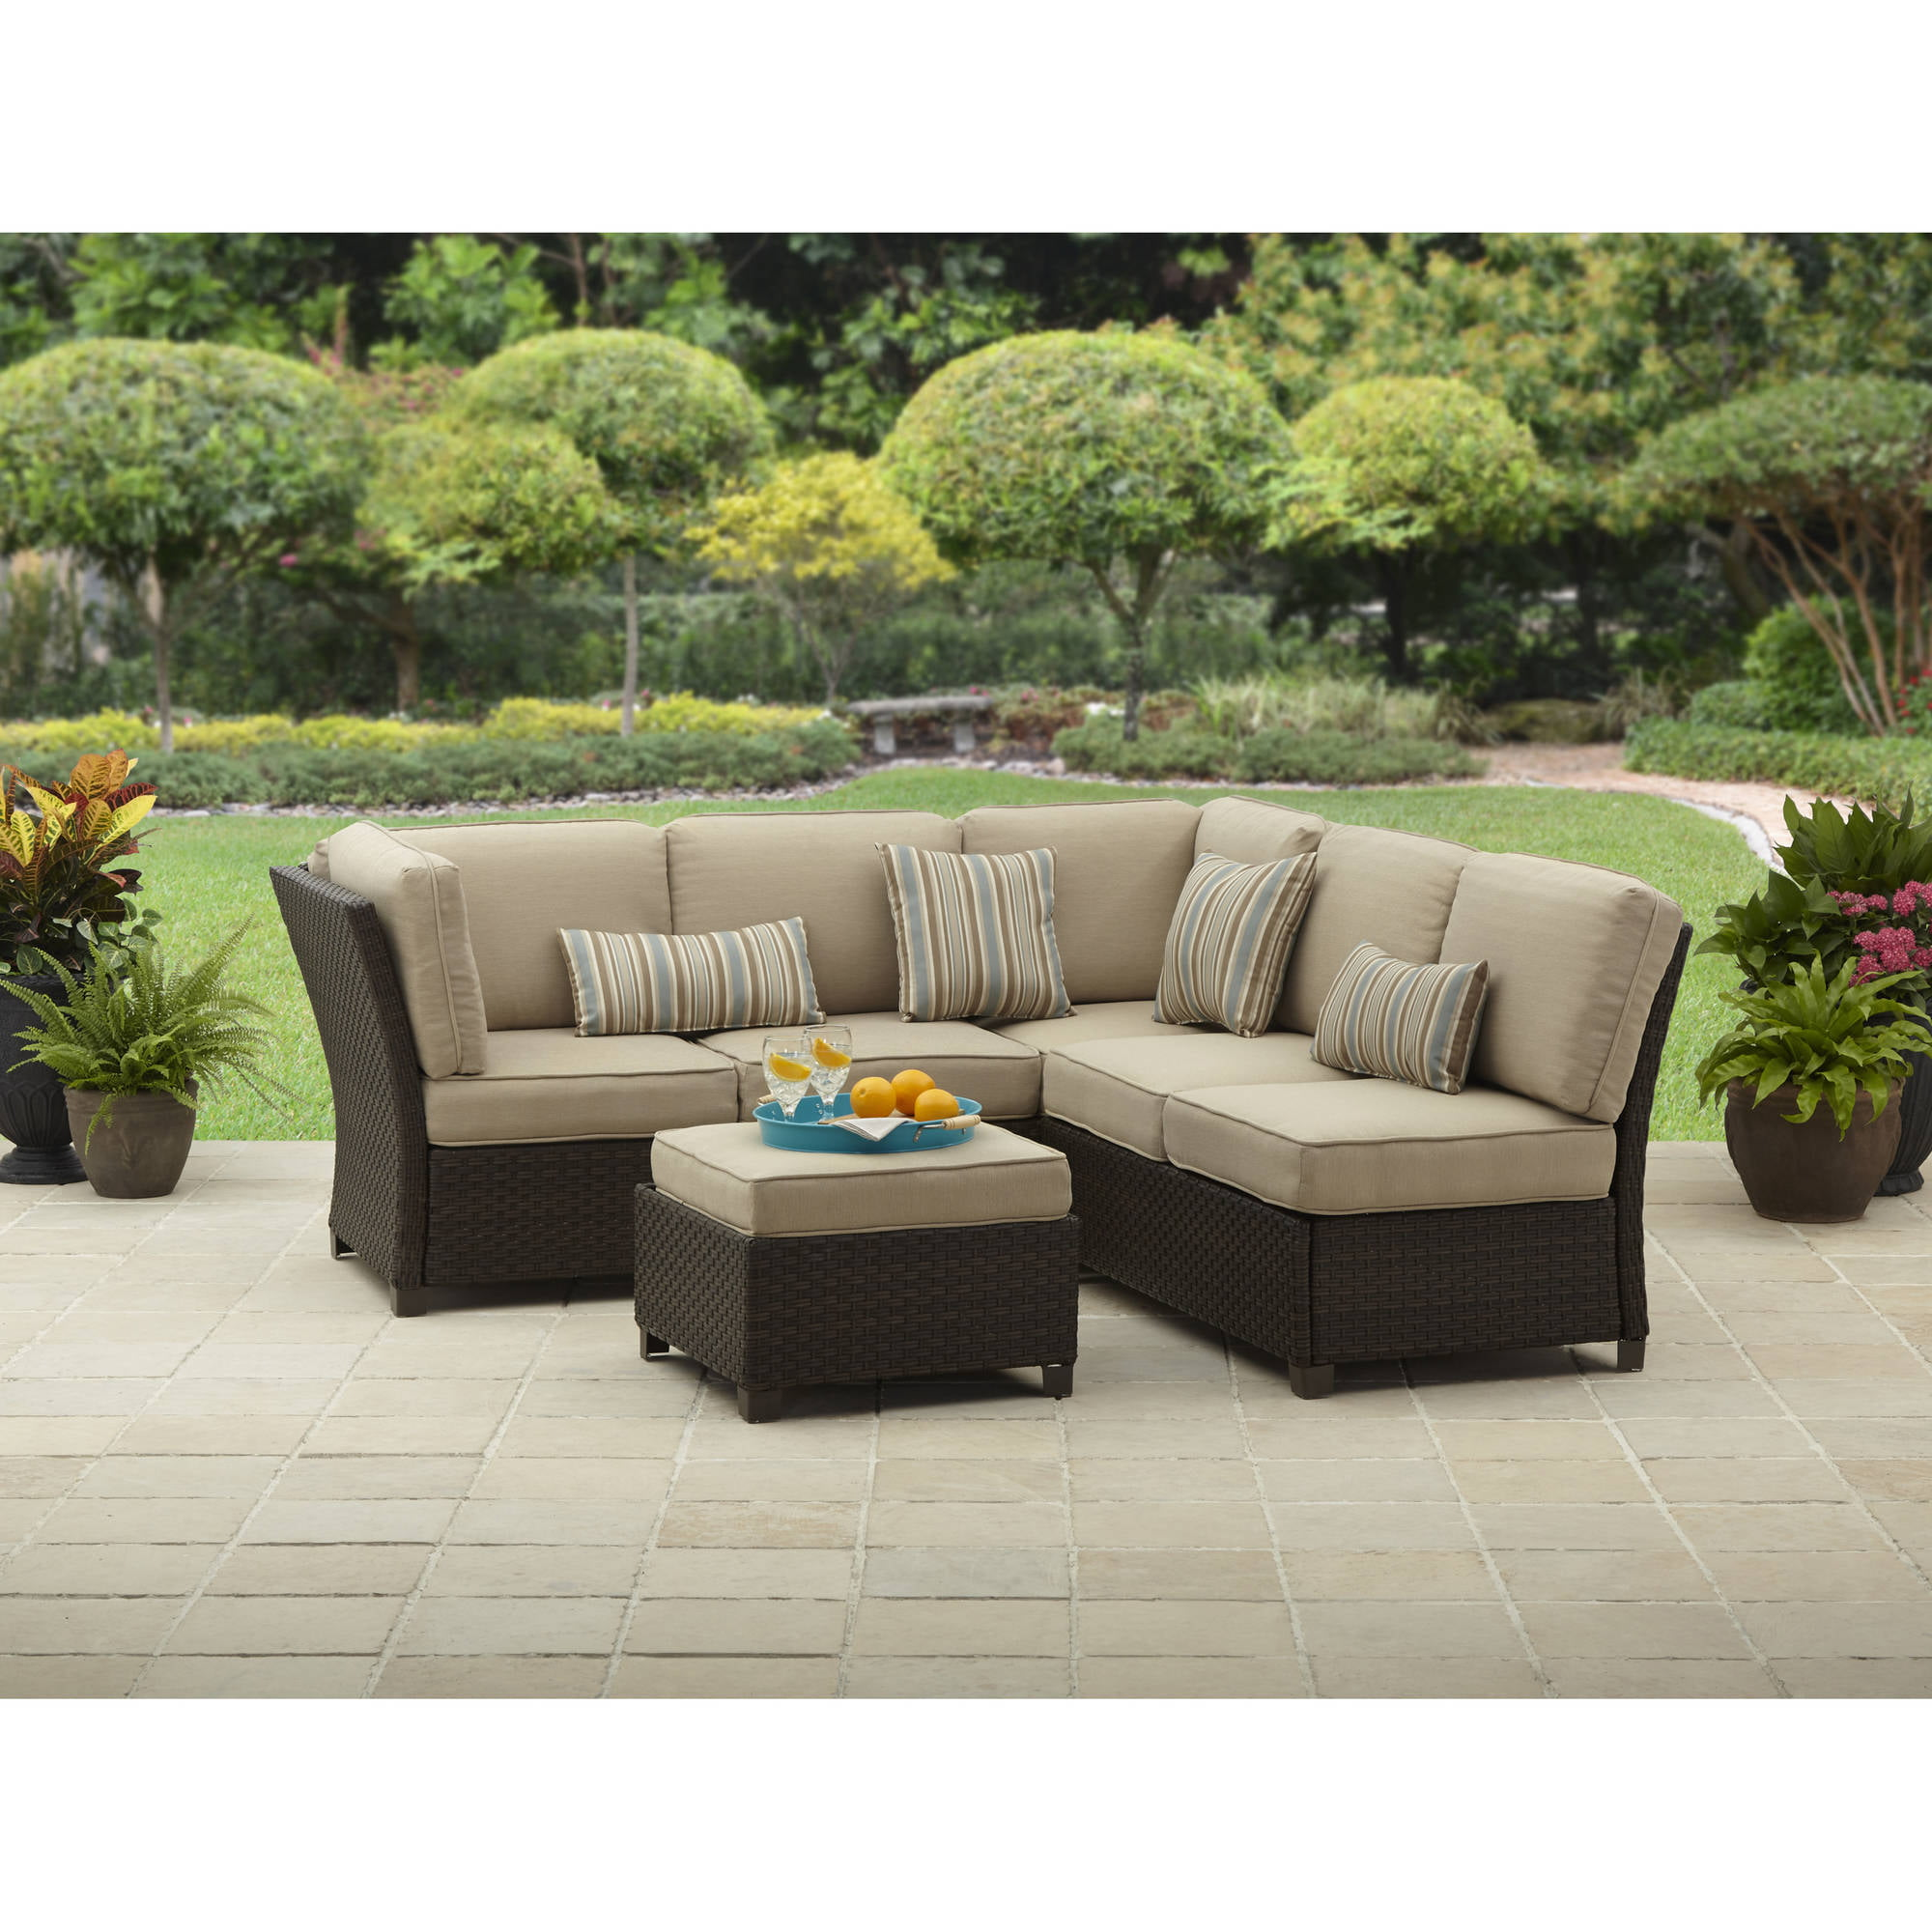 Better Homes And Gardens Cadence Wicker Outdoor Sectional Sofa Set    Walmart.com